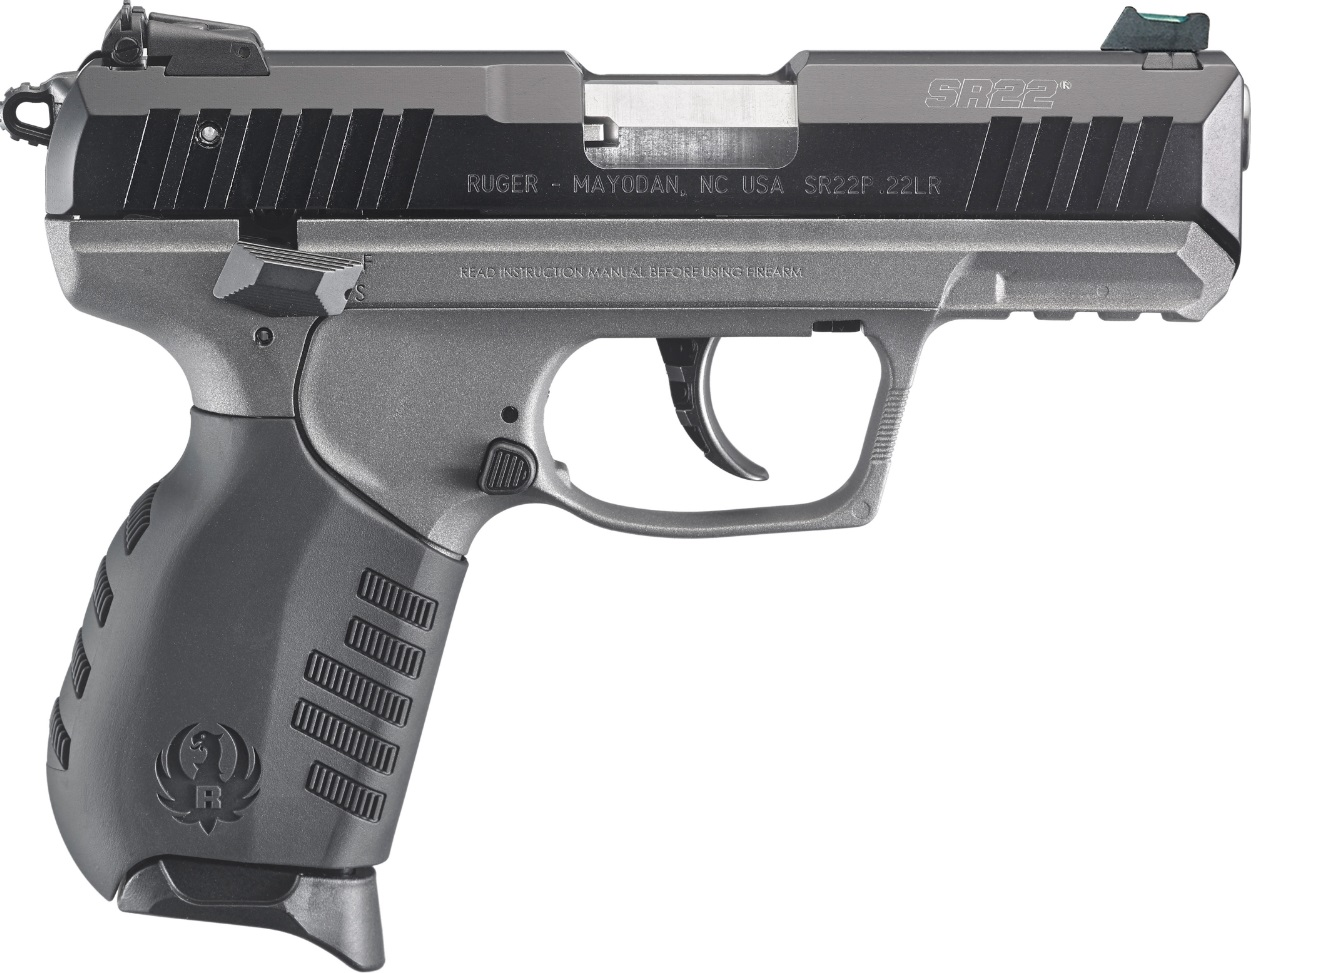 Ruger SR22 Pistol in Gray